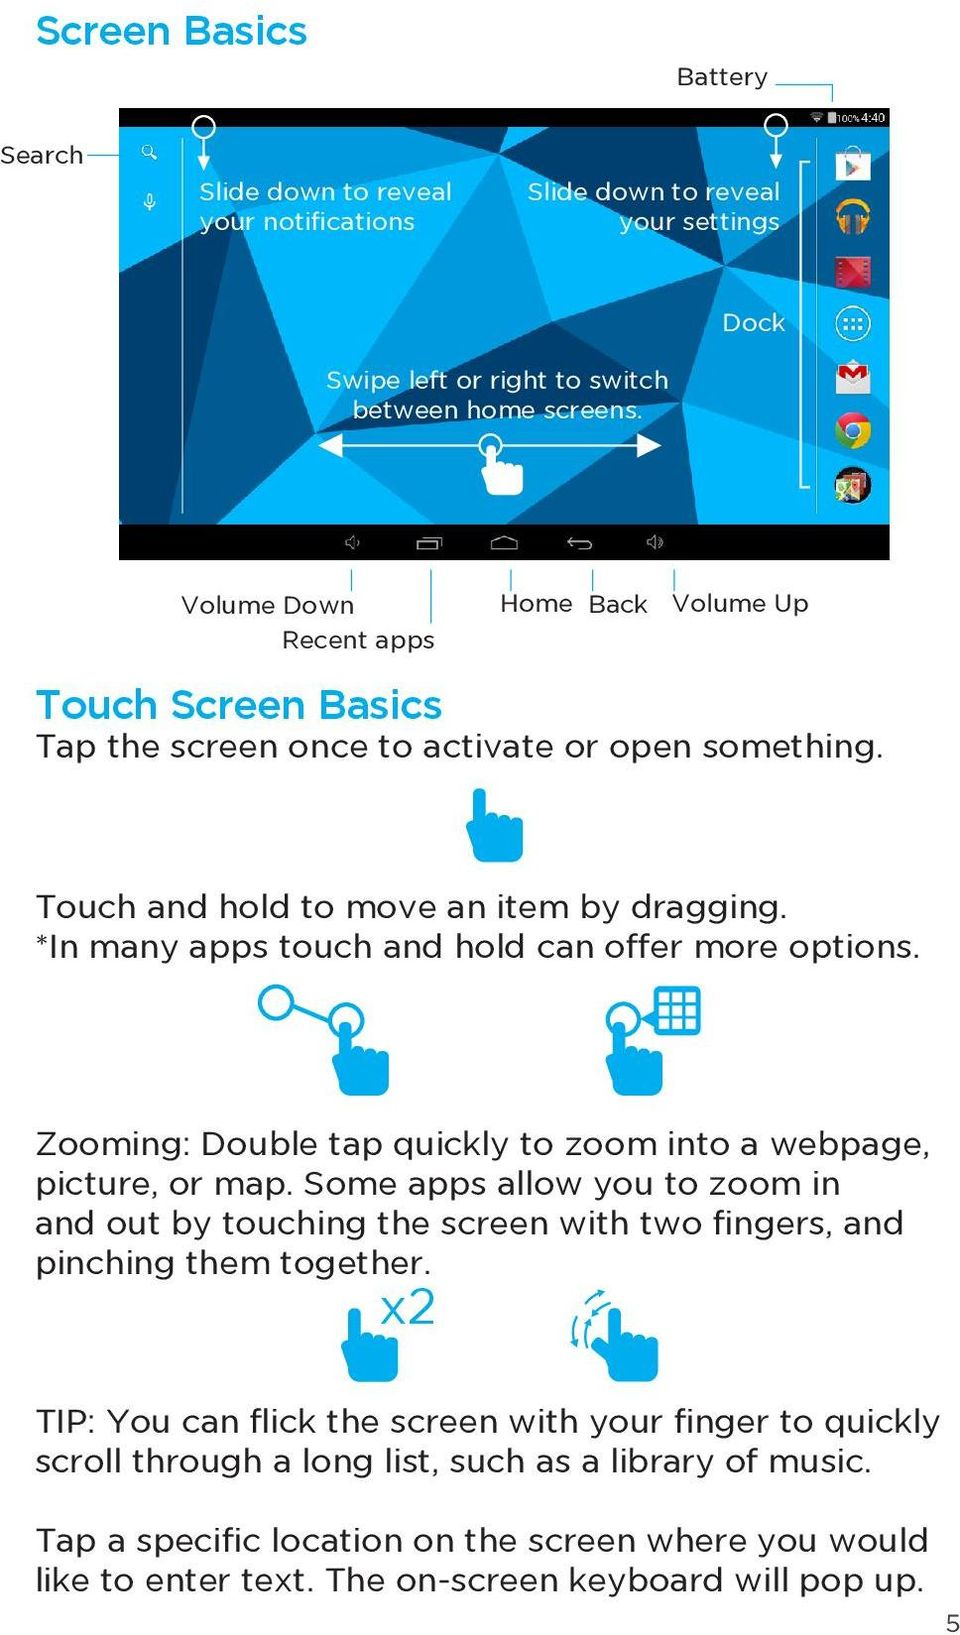 *In many apps touch and hold can offer more options. Zooming: Double tap quickly to zoom into a webpage, picture, or map.